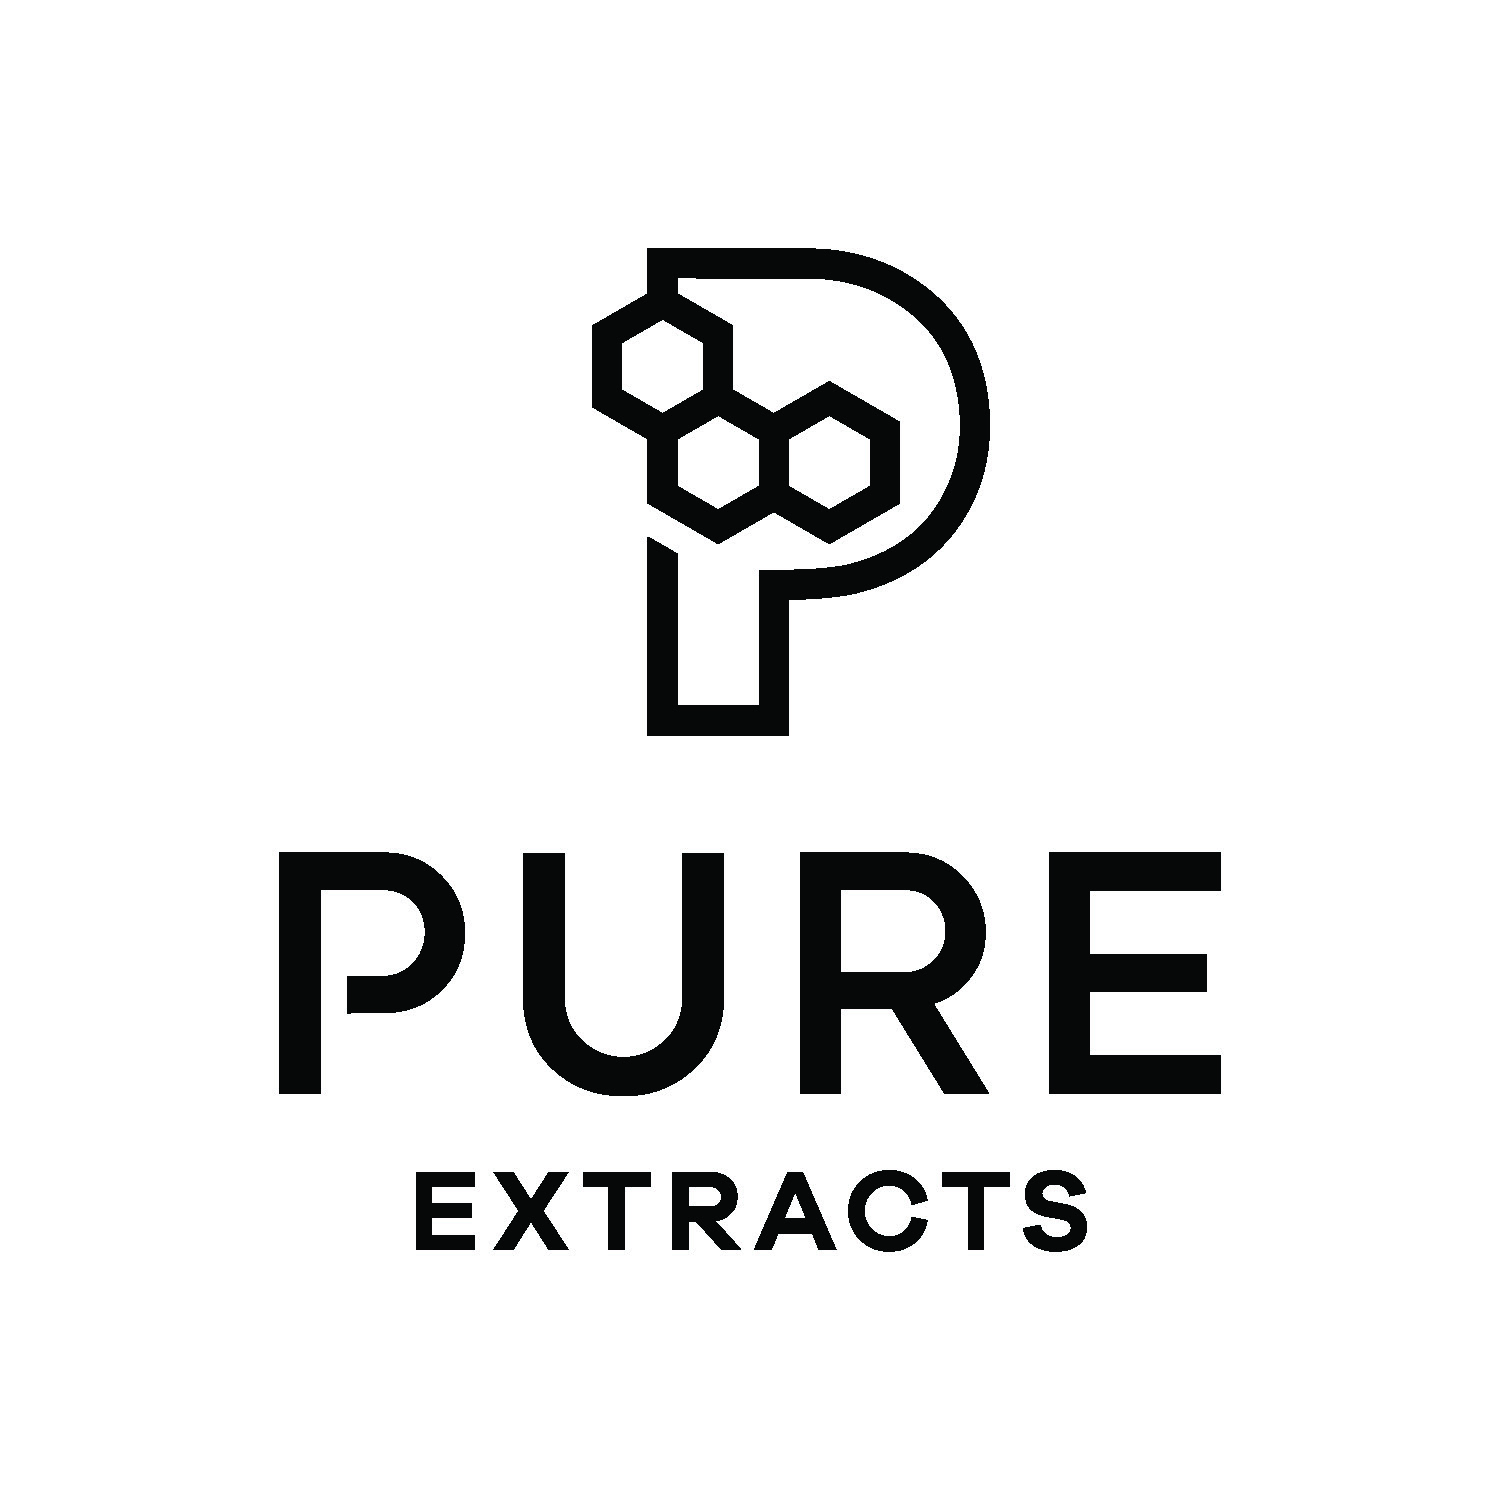 REPEAT - Pure Extracts Submits Application to Health Canada for Sales License